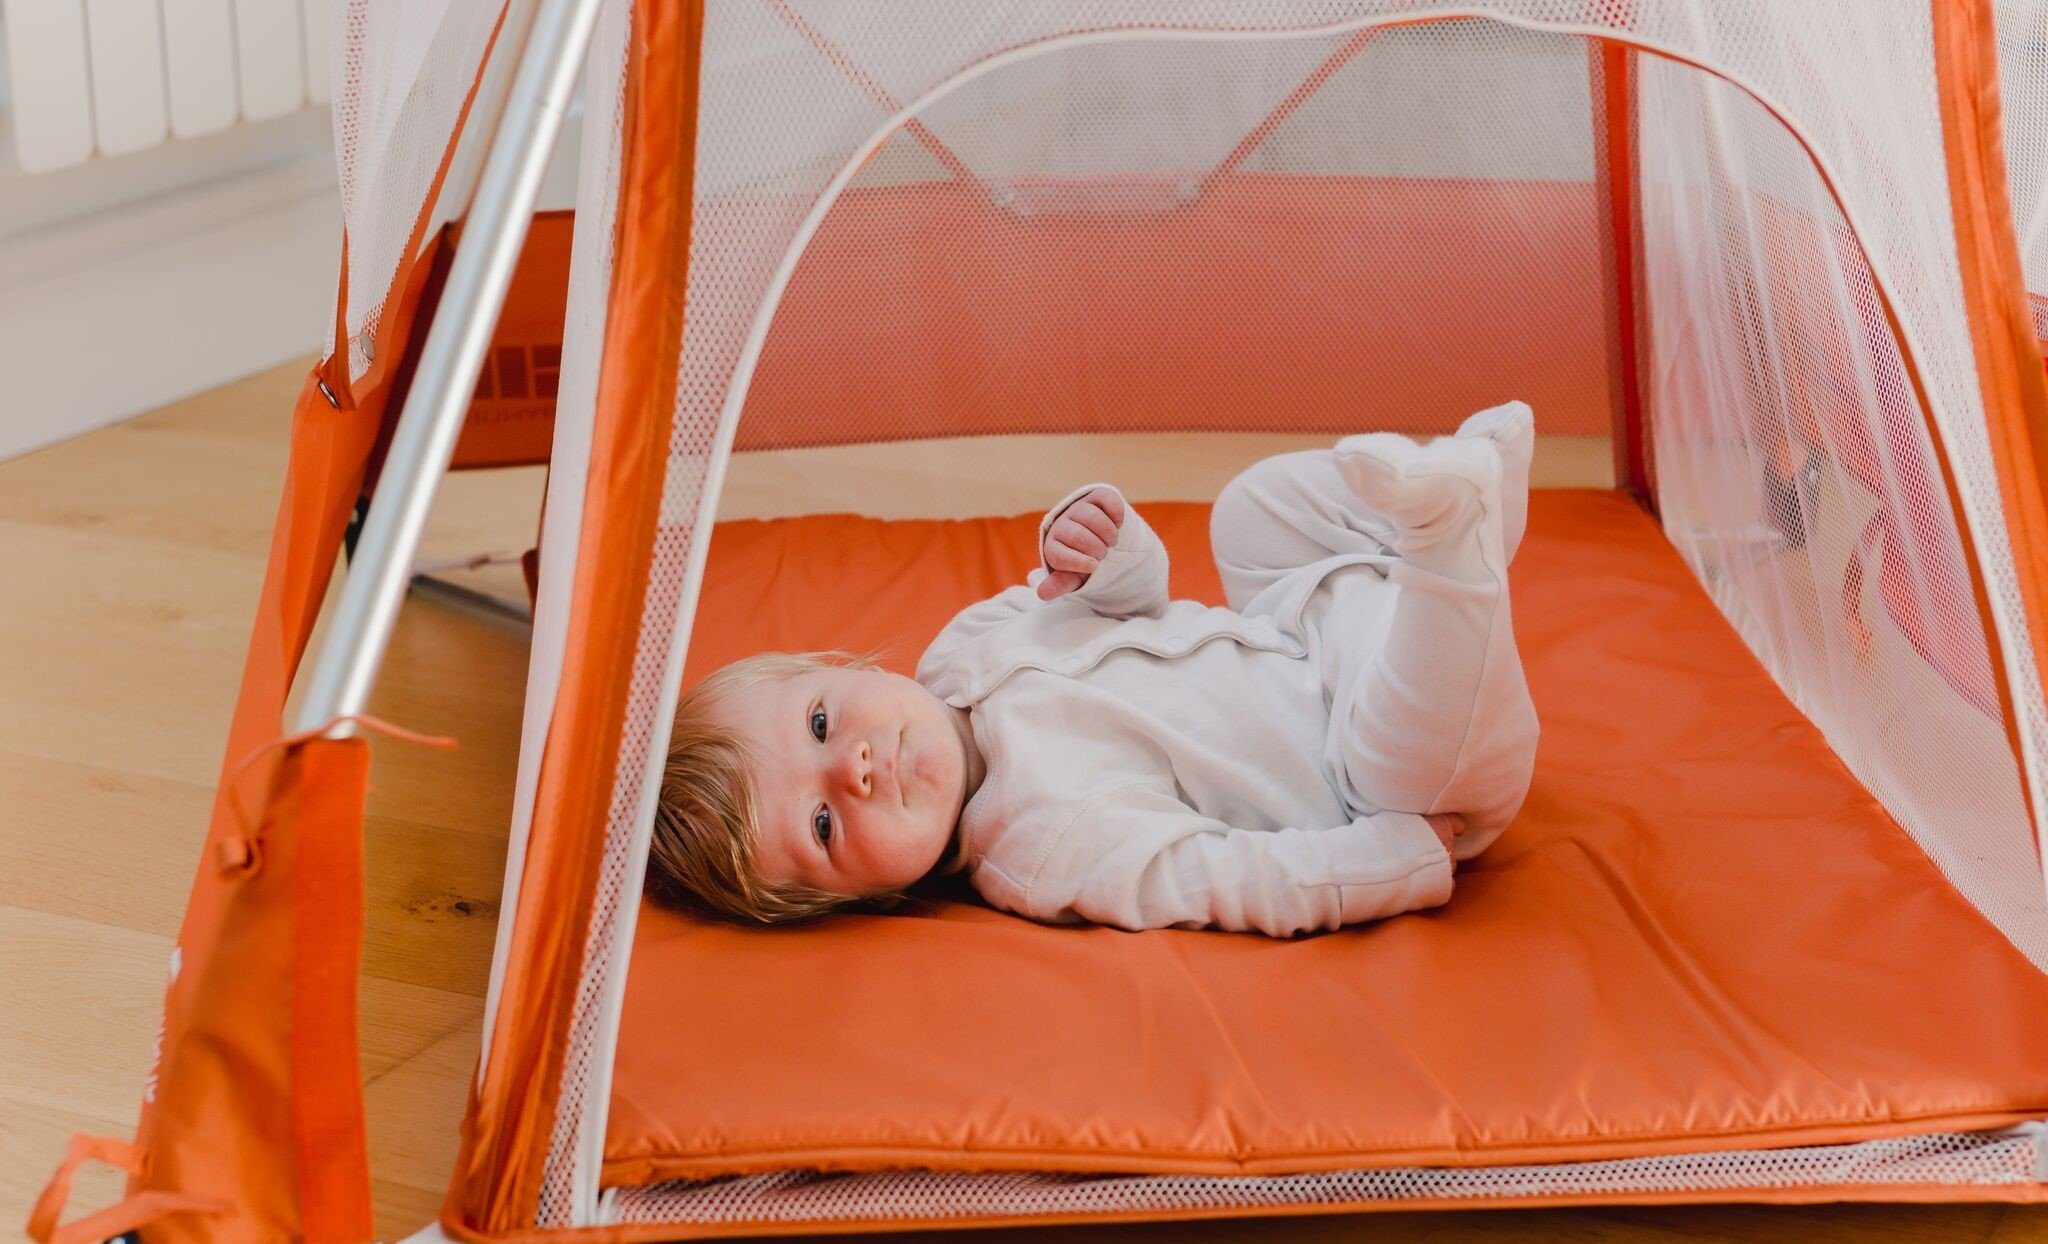 BabyHub SleepSpace Travel Cot with Mosquito Net, Orange BabyHub Three cots in one; use as a travel cot, mosquito proof space and reuse as a play tepee Includes extra mosquito net cover that can be securely in place Can be set up and moved even while holding a baby 5